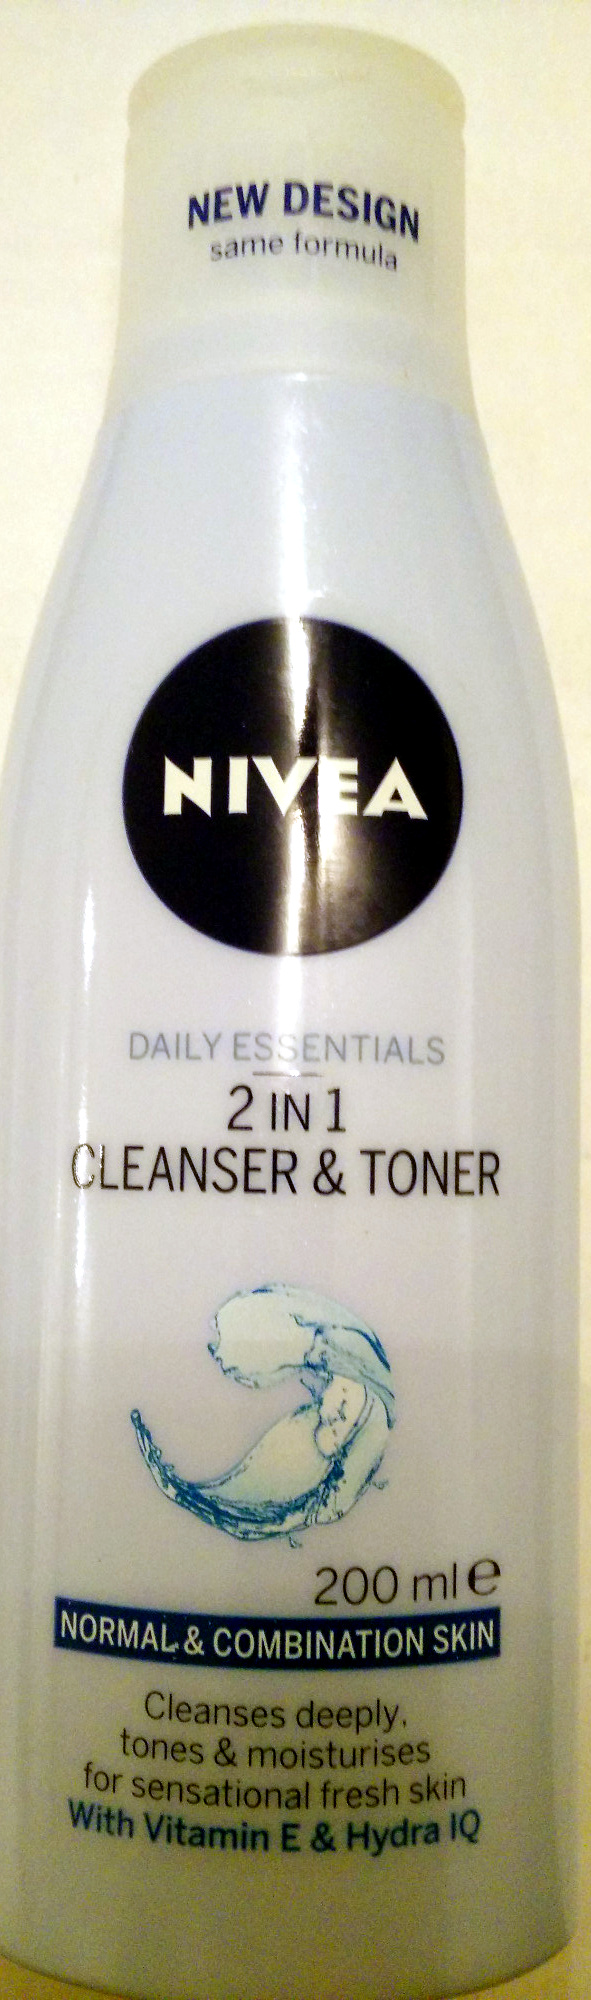 2 in 1 cleanser & toner - Product